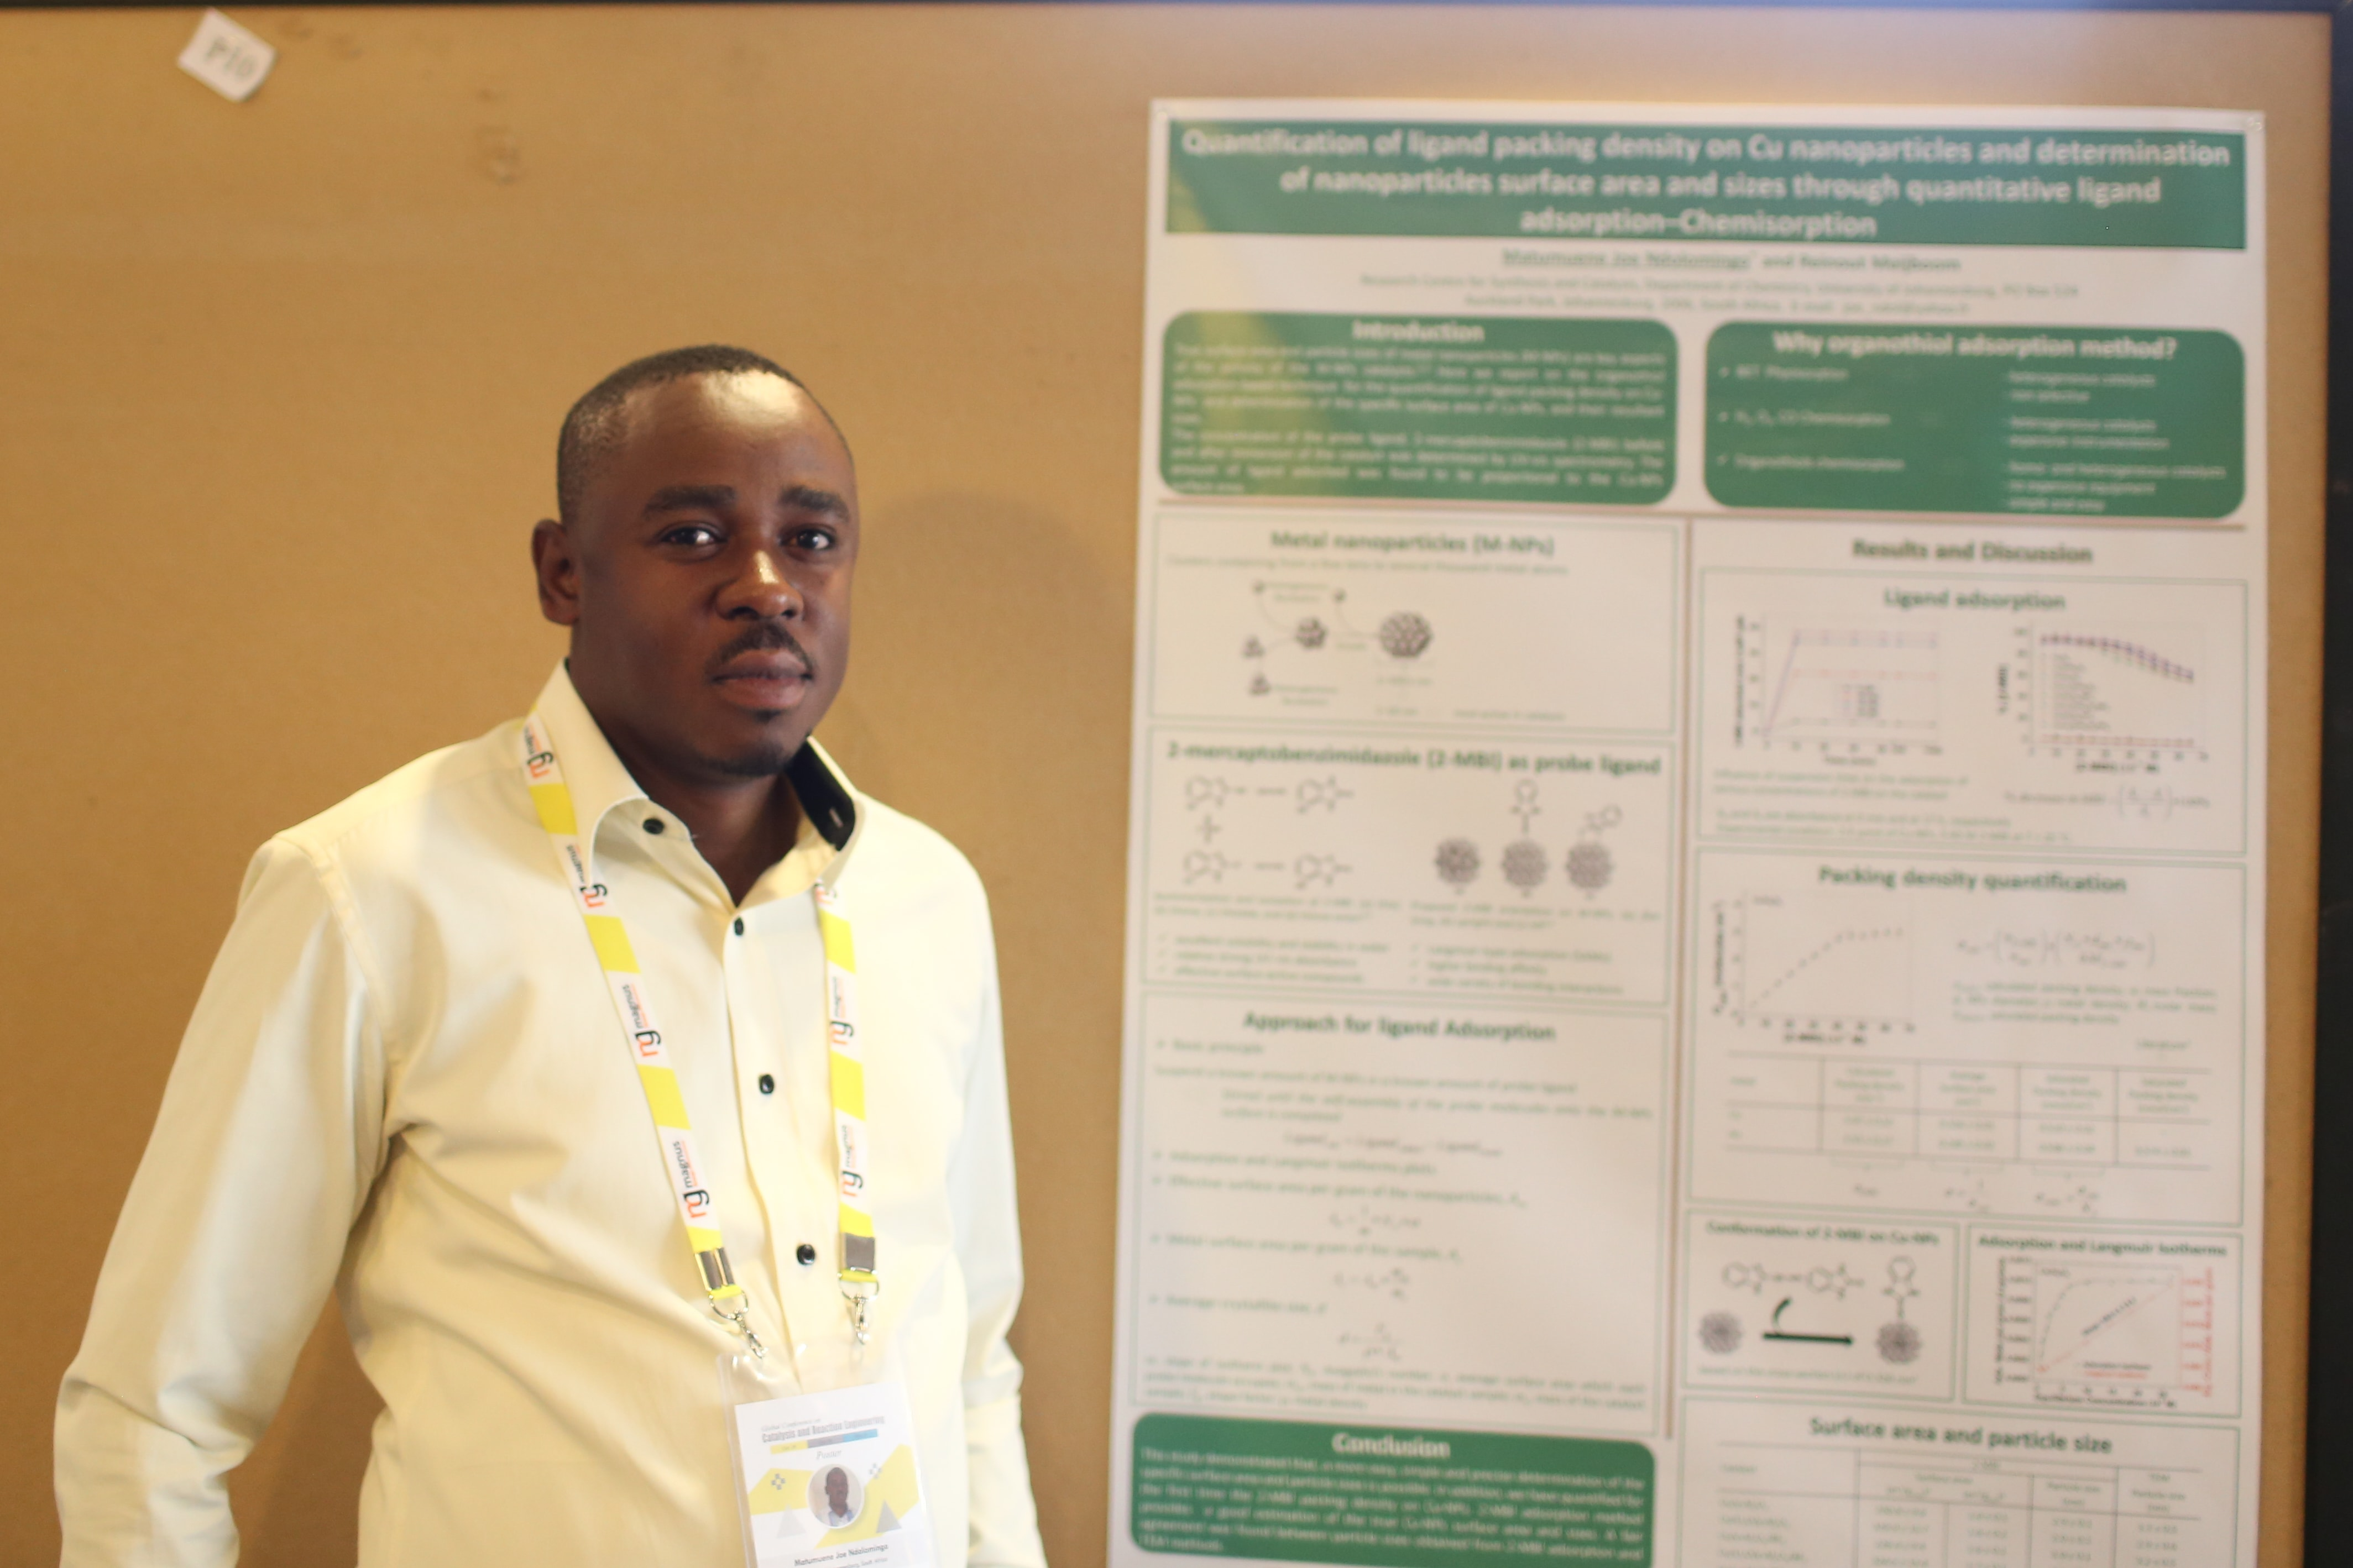 Matumuene Joe Ndolomingo, University of Johannesburg, South Africa